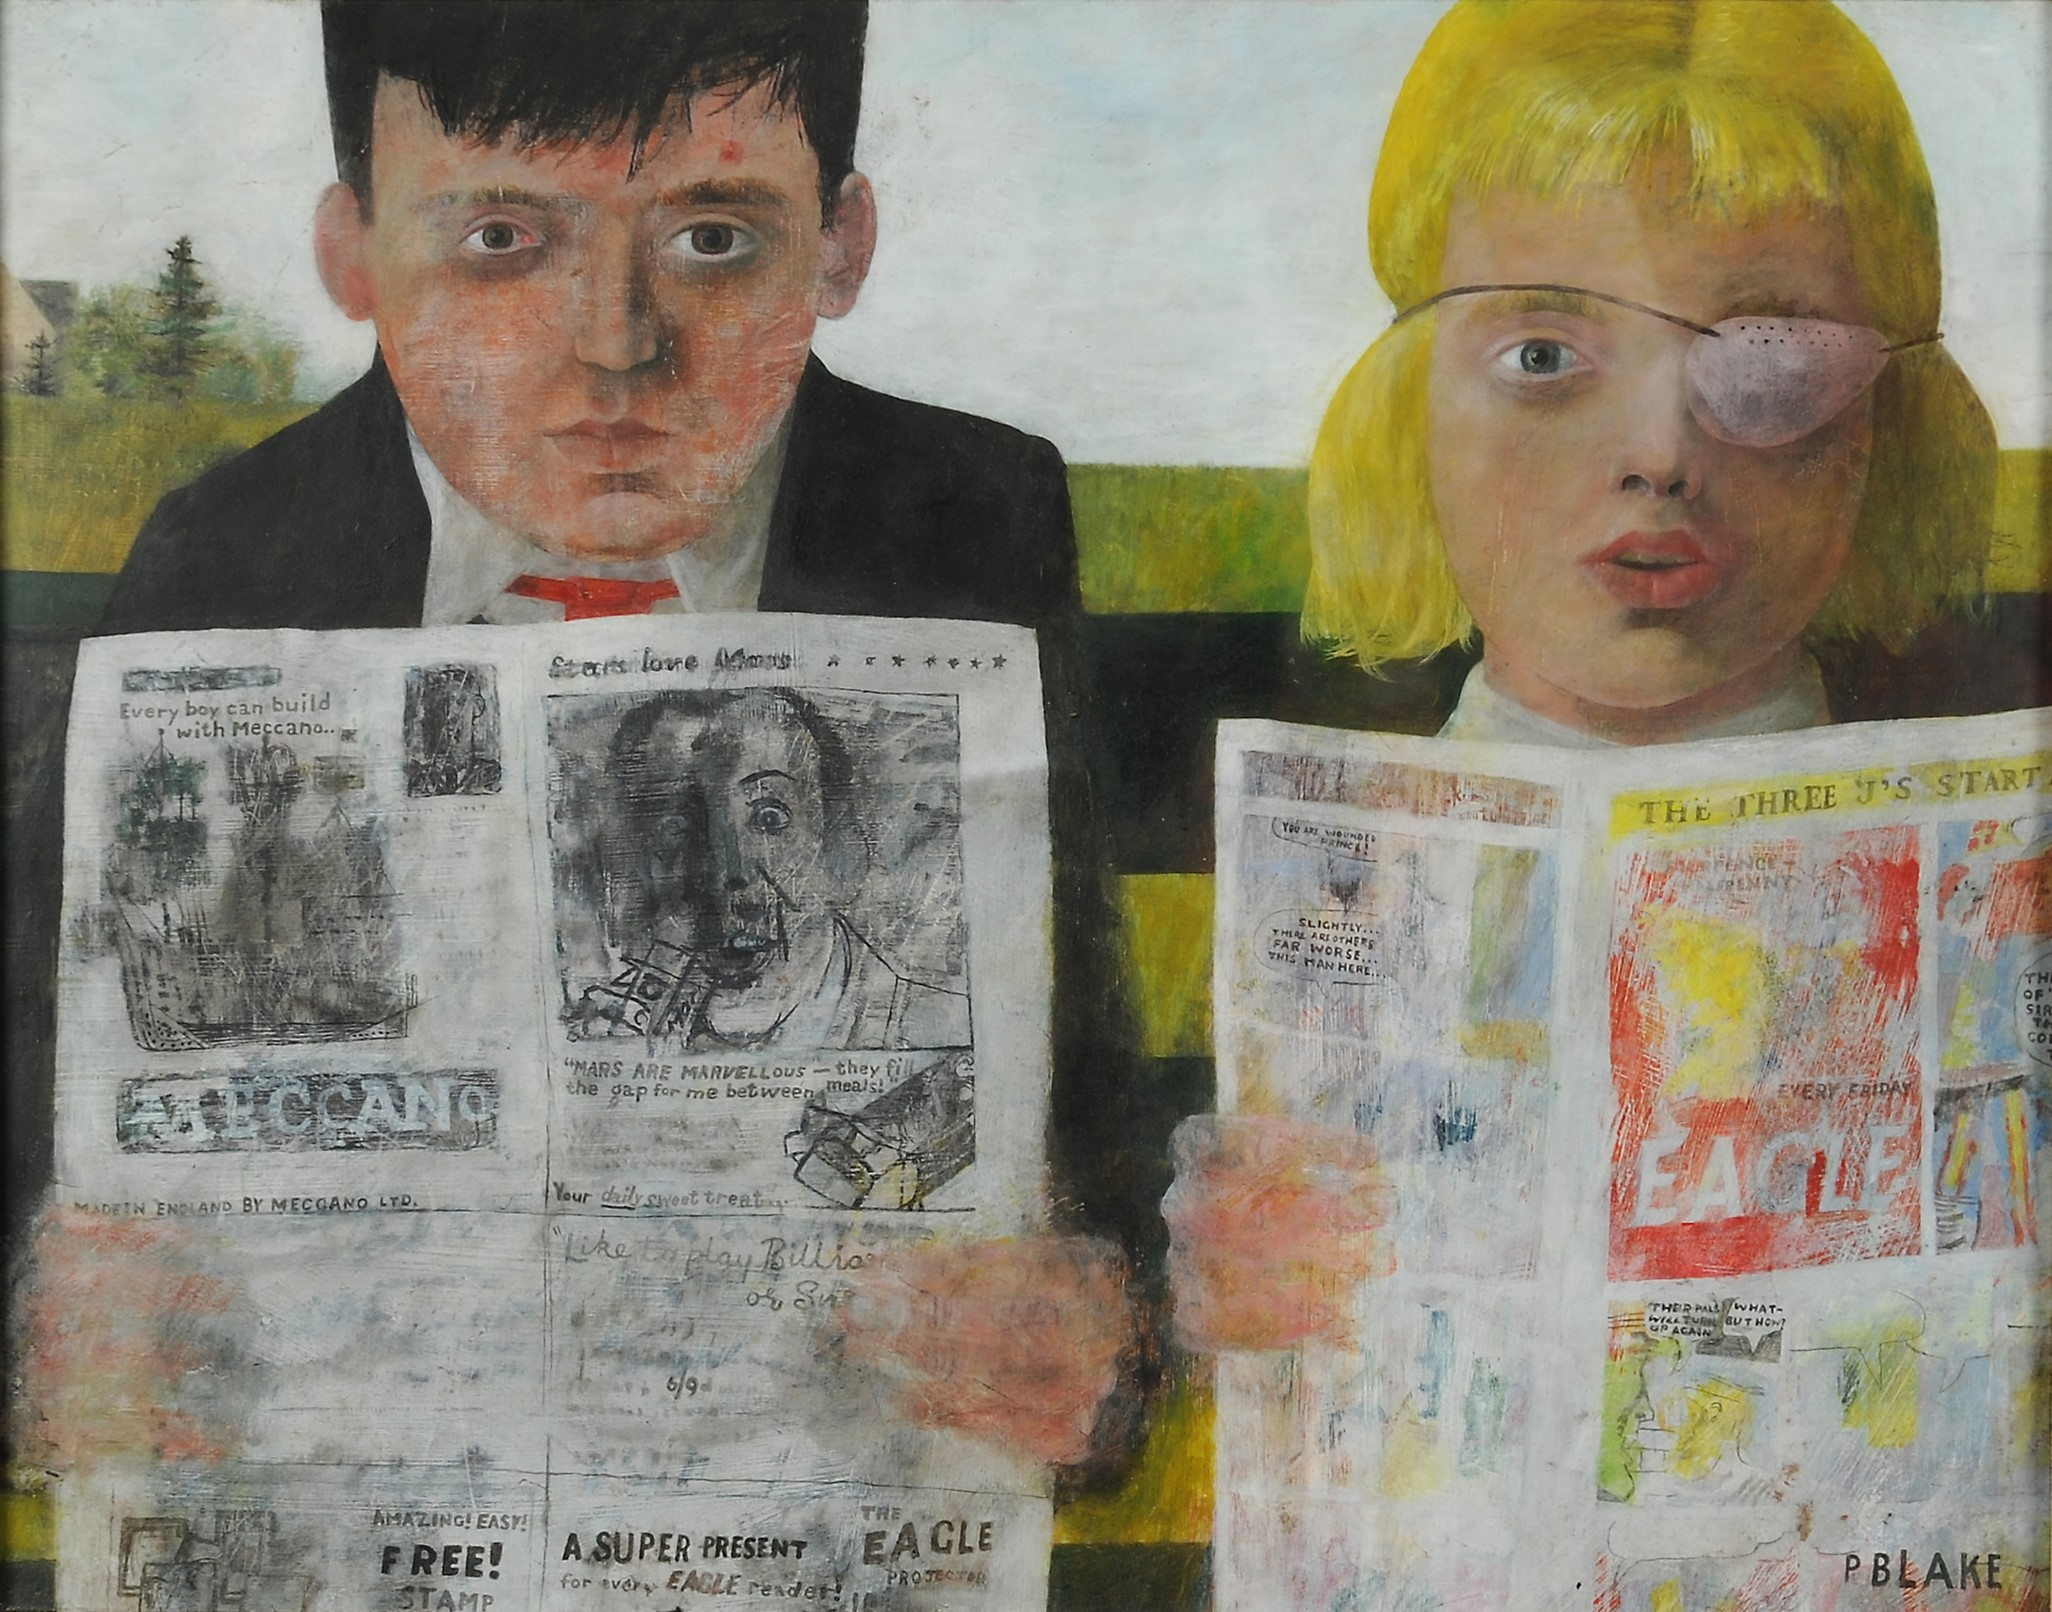 eter Blake, CHILDREN READING COMICS, 1954, Öl auf Hartfaserplatte, 36,7 x 47,1 cm, Tullie House Museum and Art Gallery Trust, Carlisle,© VG Bild-Kunst, Bonn 2016.